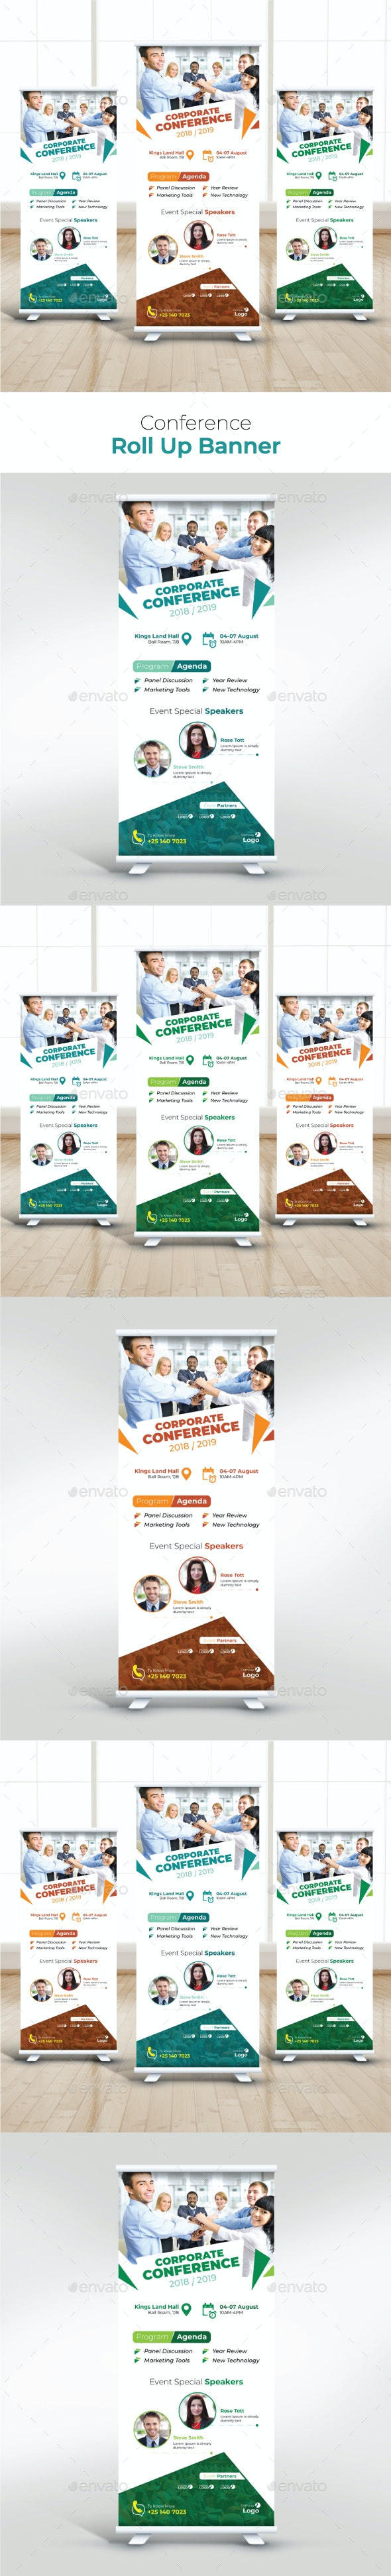 Conference Roll Up Banner - Signage Print Templates